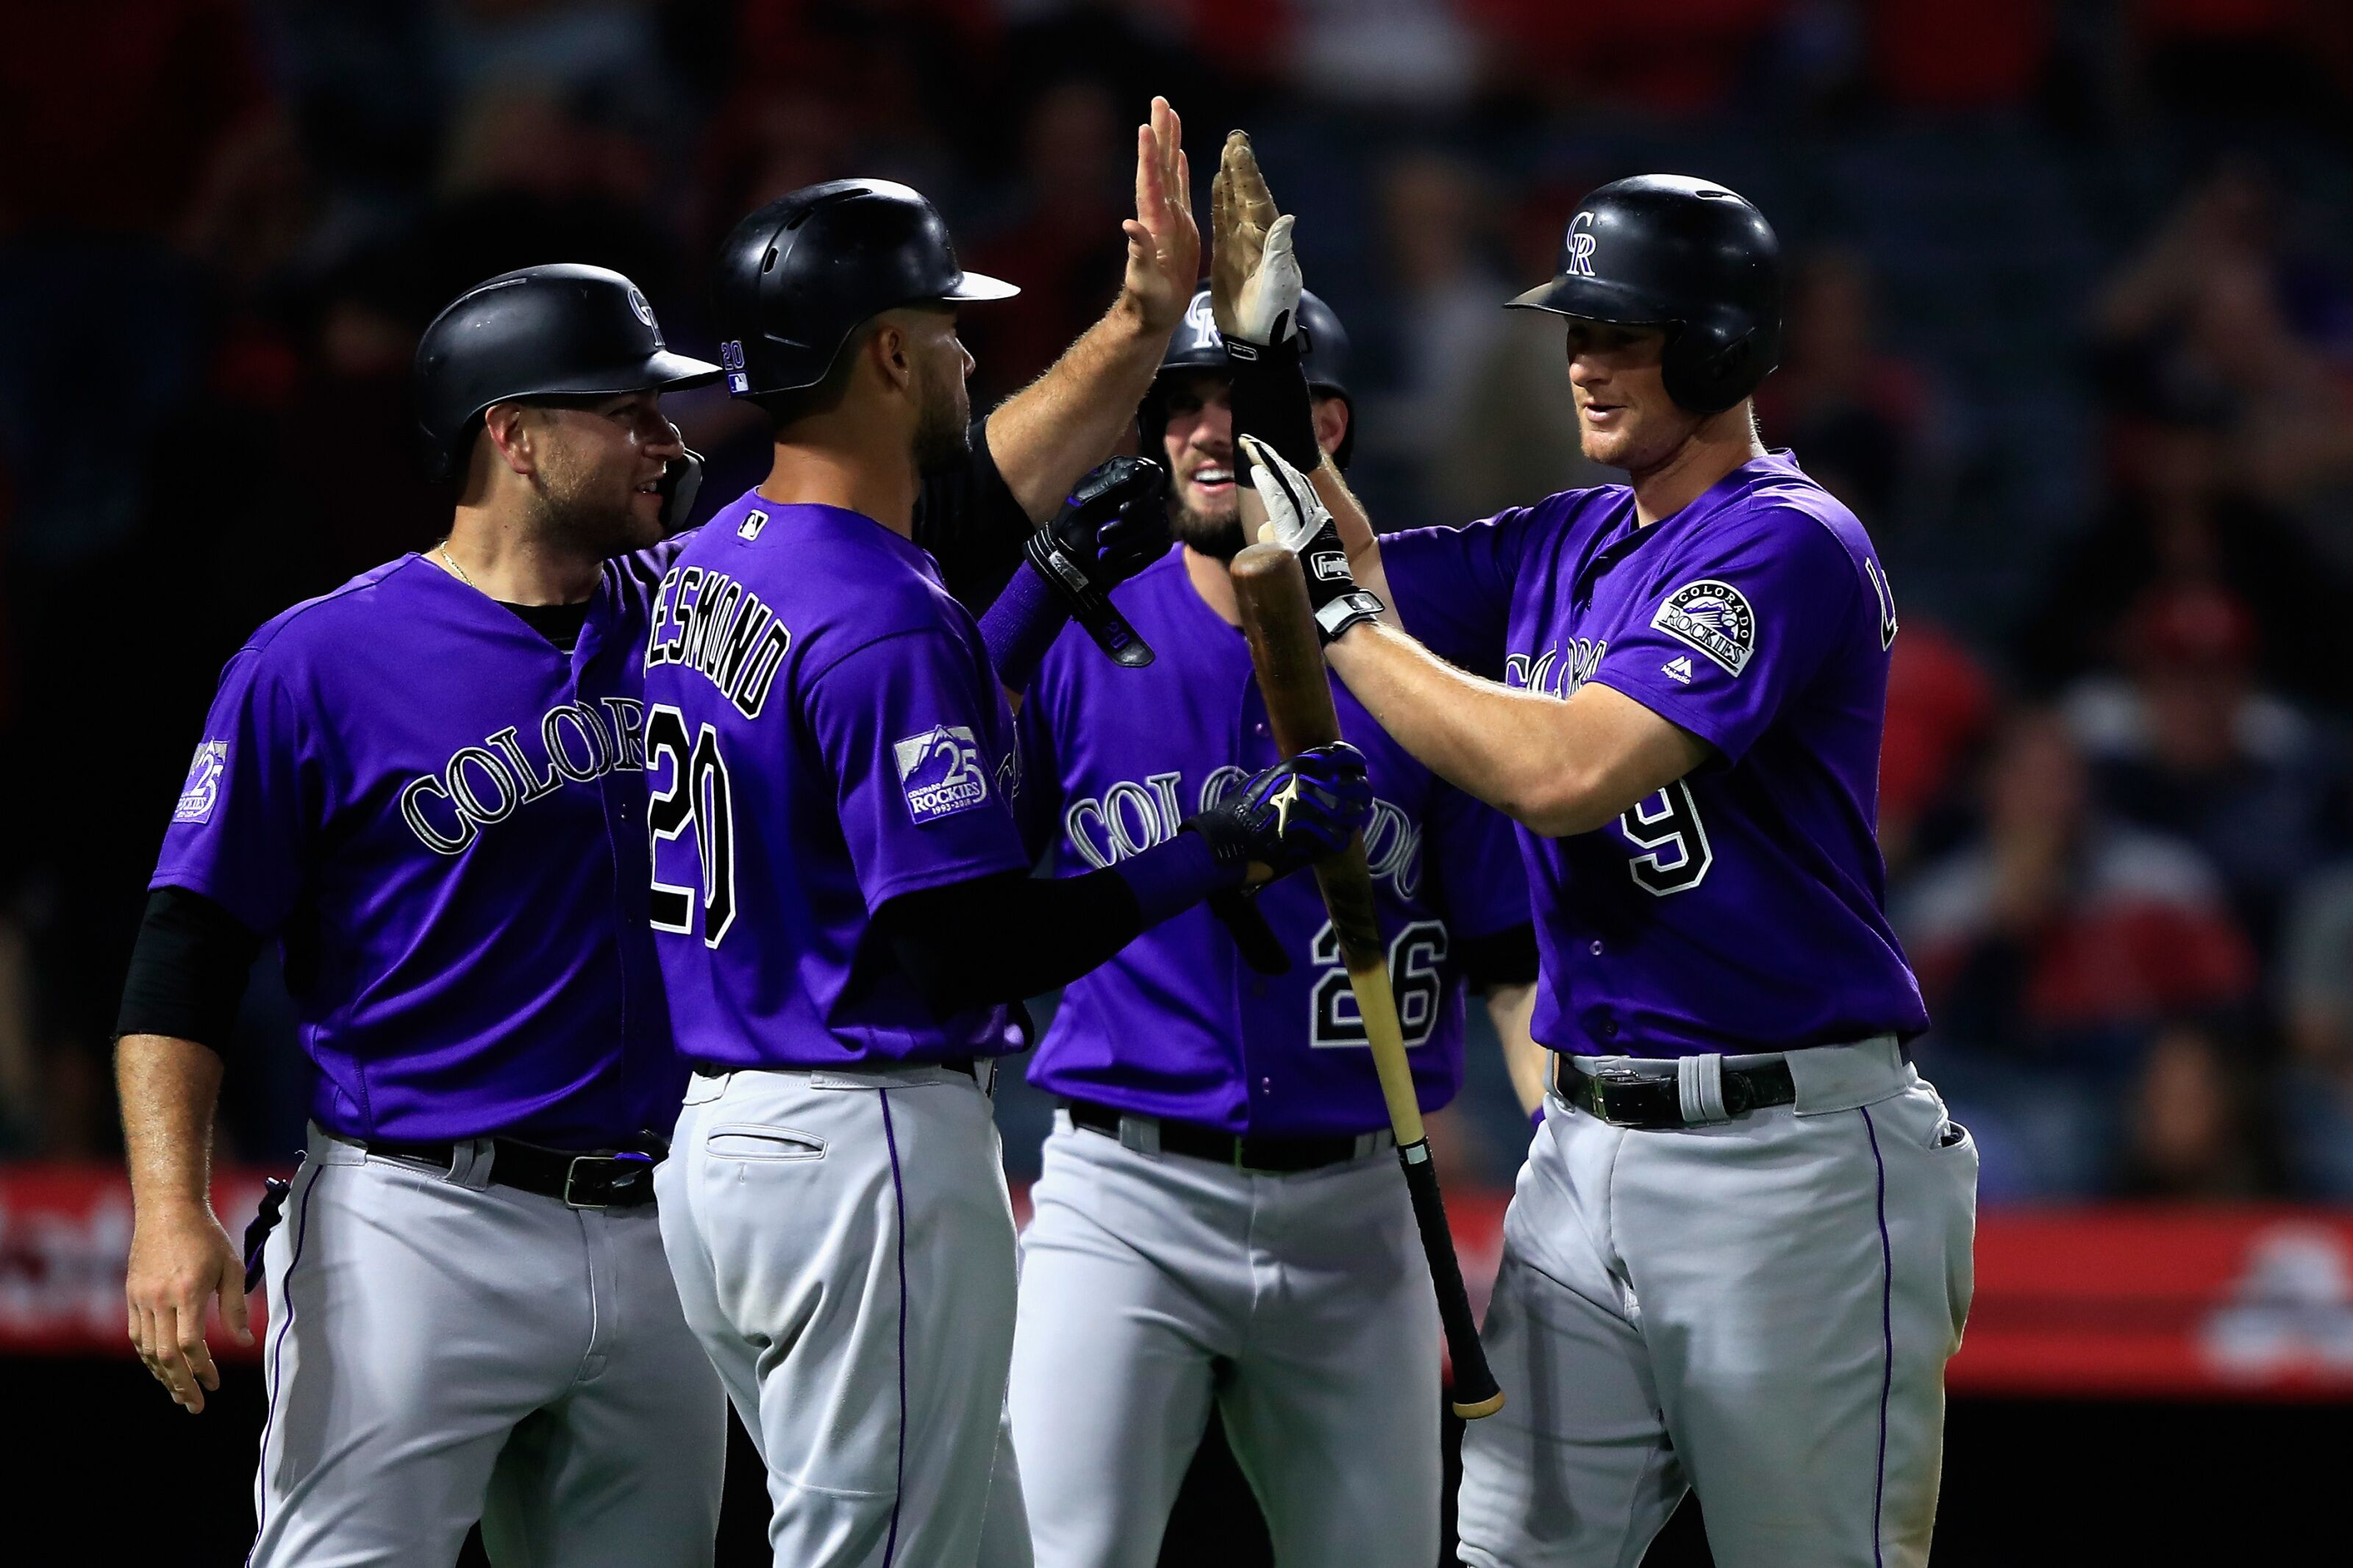 bfa5a1a90 Colorado Rockies must stockpile wins while they still can